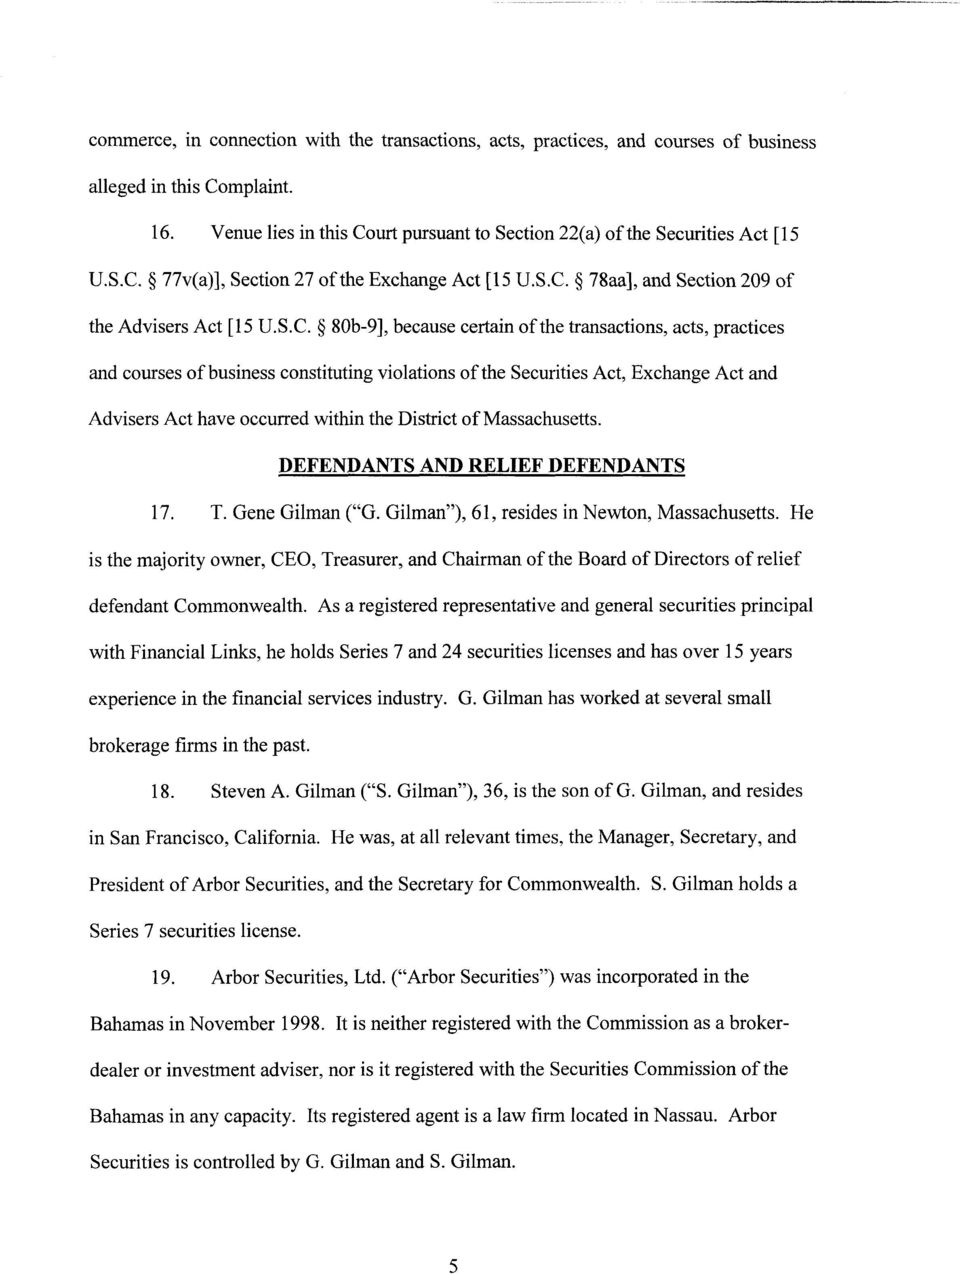 "Exchange Act and Advisers Act have occurred within the District of Massachusetts. DEFENDANTS AND RELIEF DEFENDANTS 17. T. Gene Gilman (""G. Gilman""), 61, resides in Newton, Massachusetts."